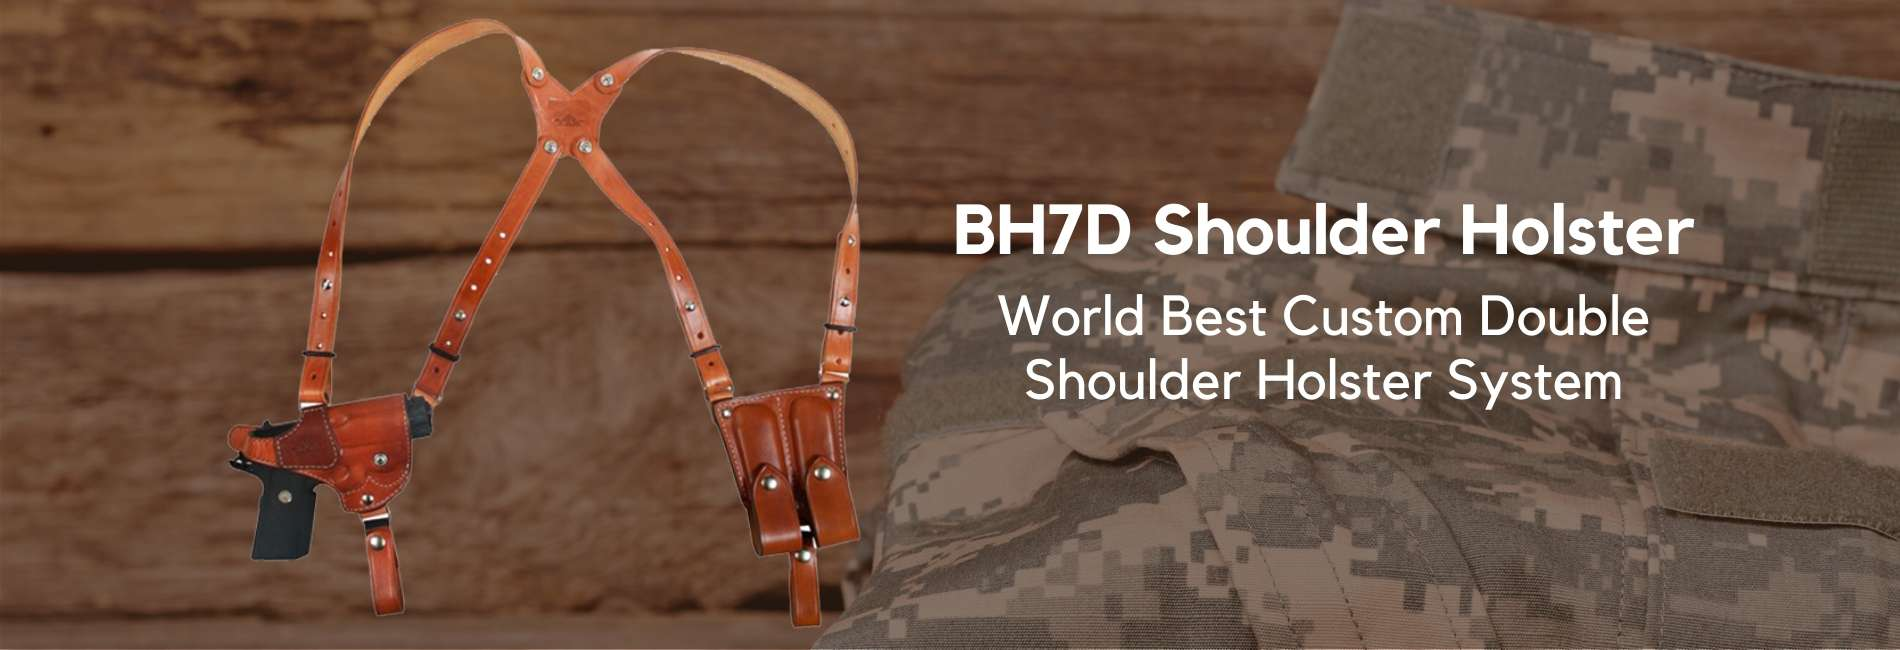 BH7D World Best Custom Shoulder Holsters Systems